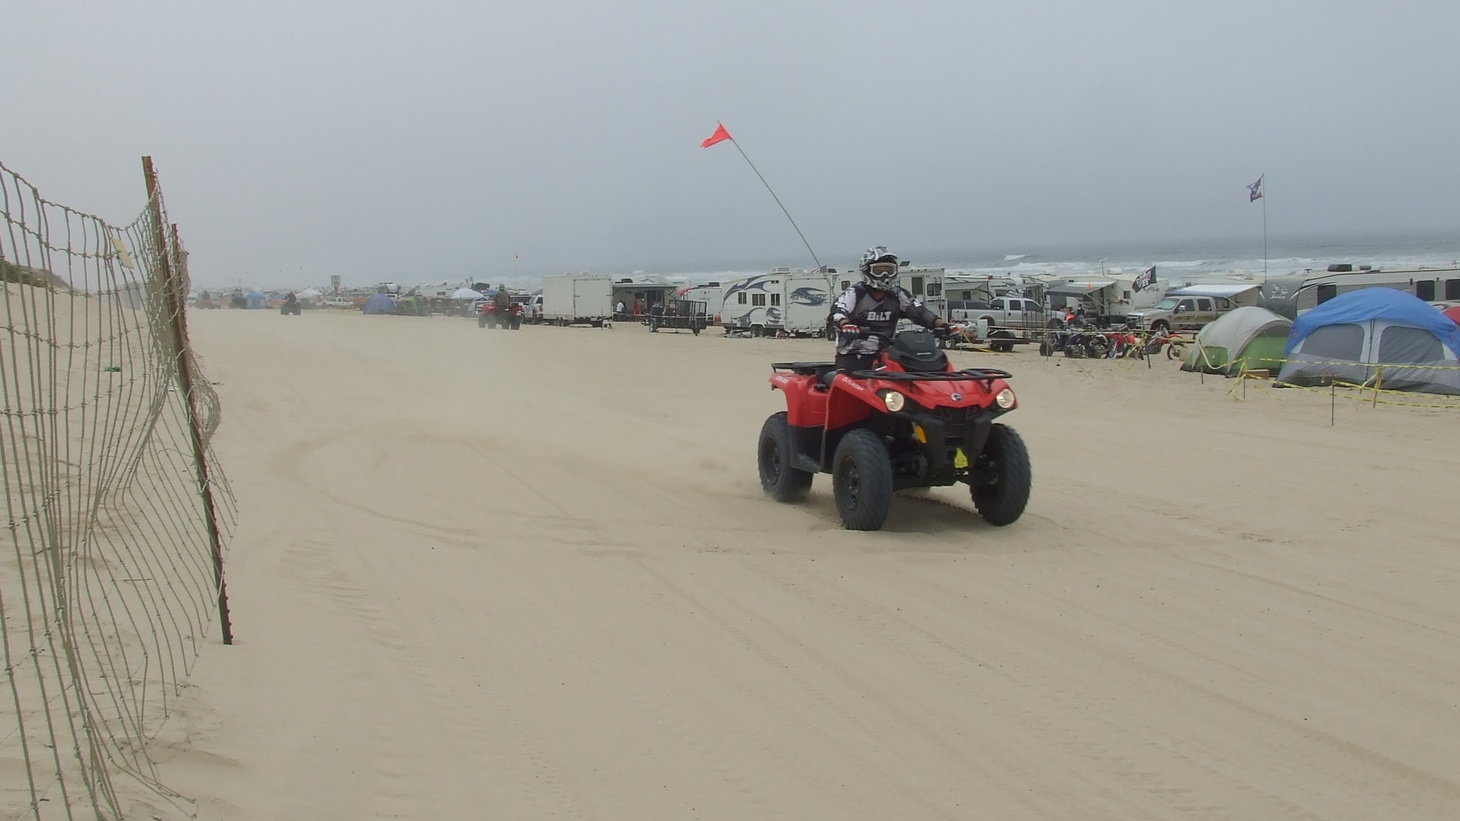 An ATV rider enjoys some sand racing at Oceano Dunes. This year, six people have died at the park with many others wounded.